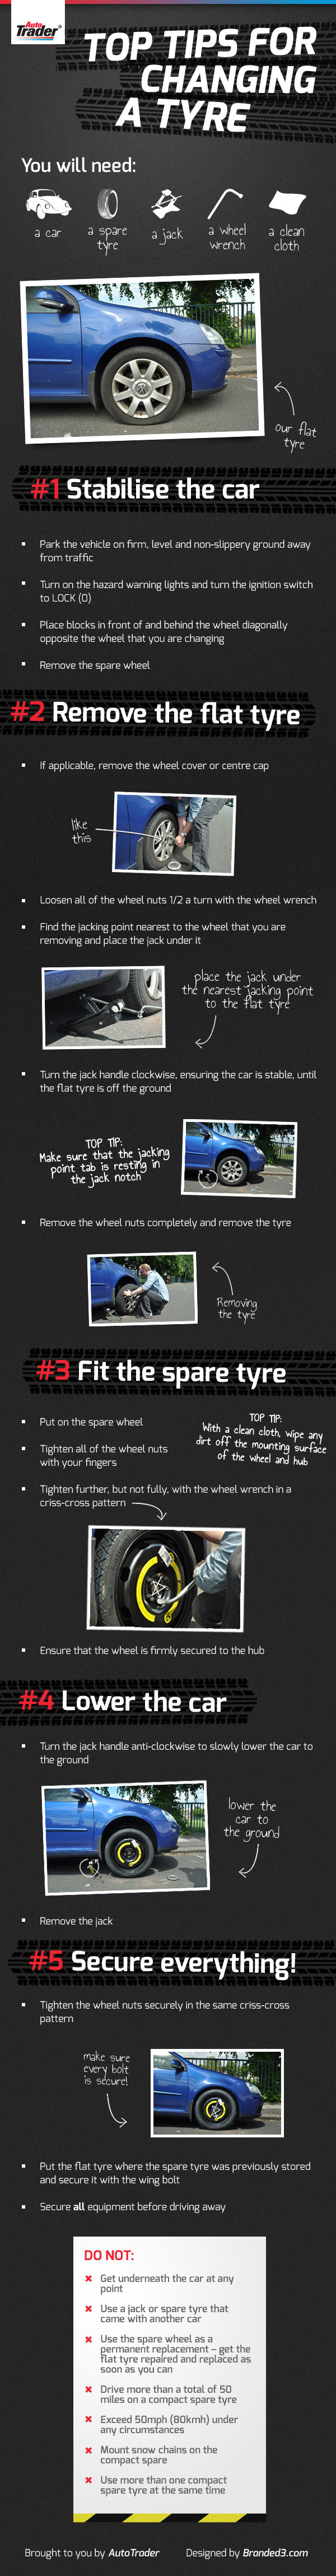 How_To_Change_A_Car_Tyre_Instructographic